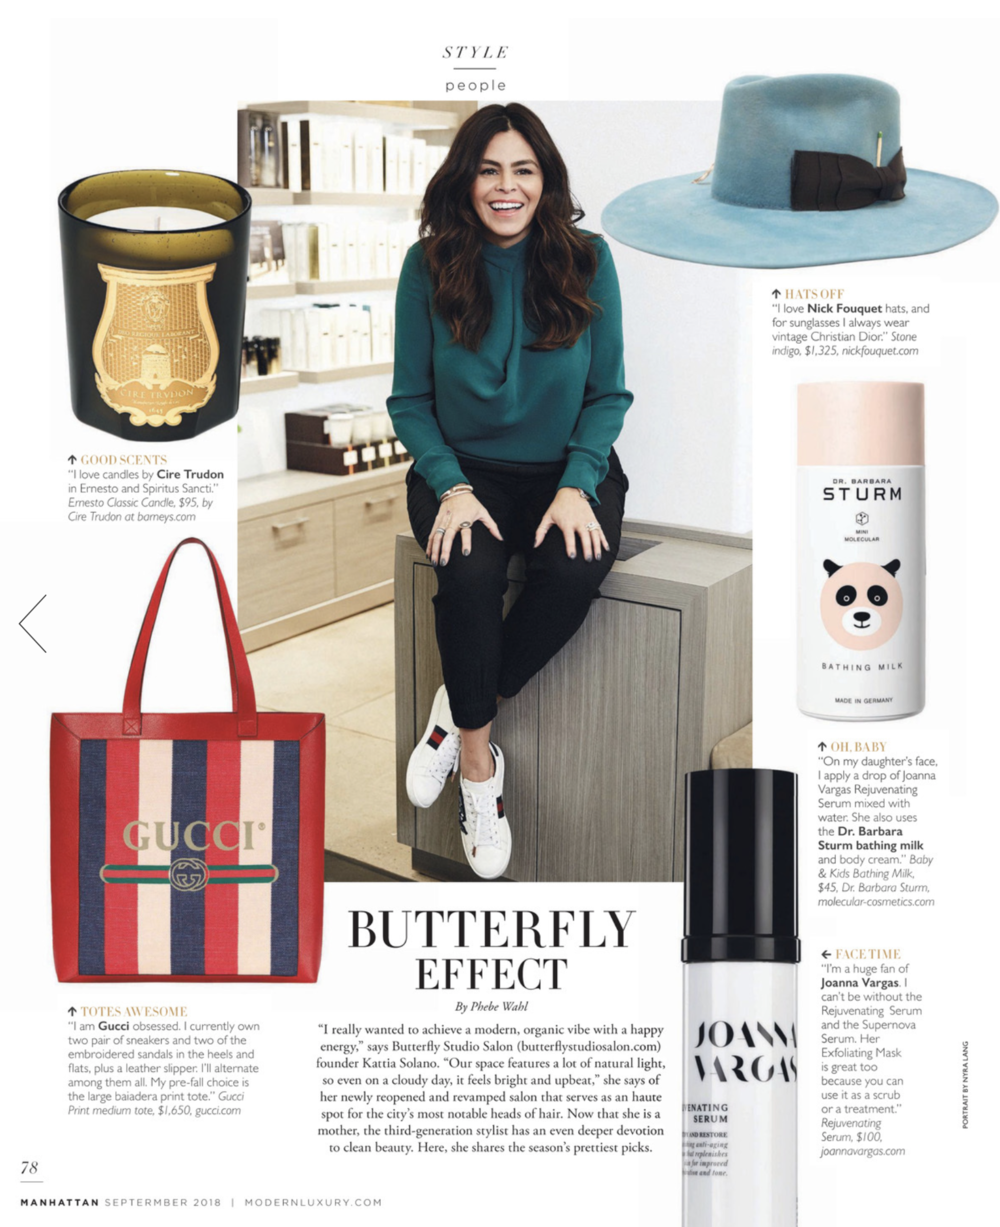 MODERNLUXURY.COM   Kattia Solano is featured in Modern Luxury. Full page spread on Solano's beauty favorites.